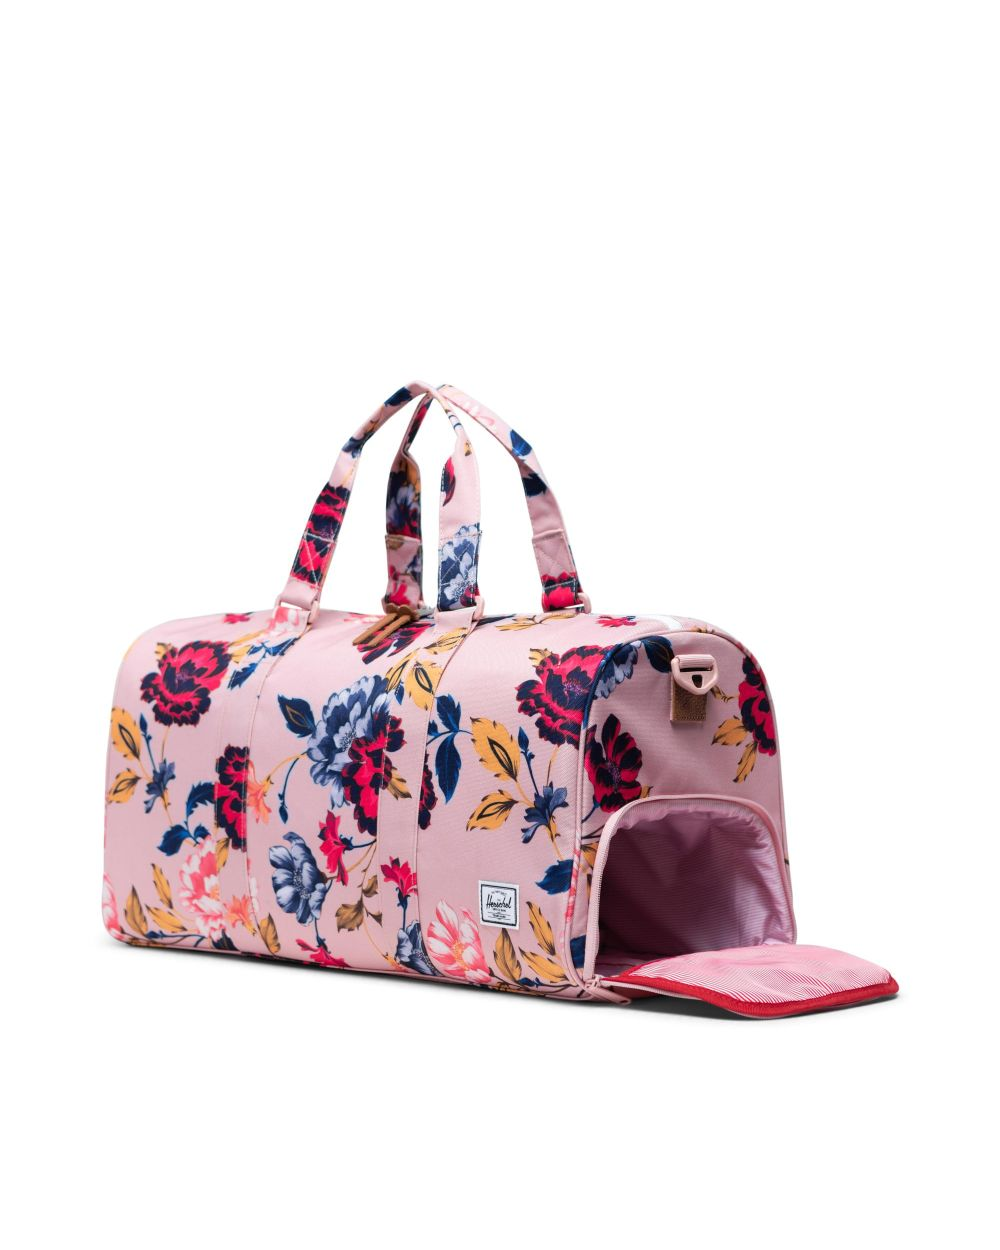 NOVEL DUFFLE MID-VOLUME - WINTER FLORA